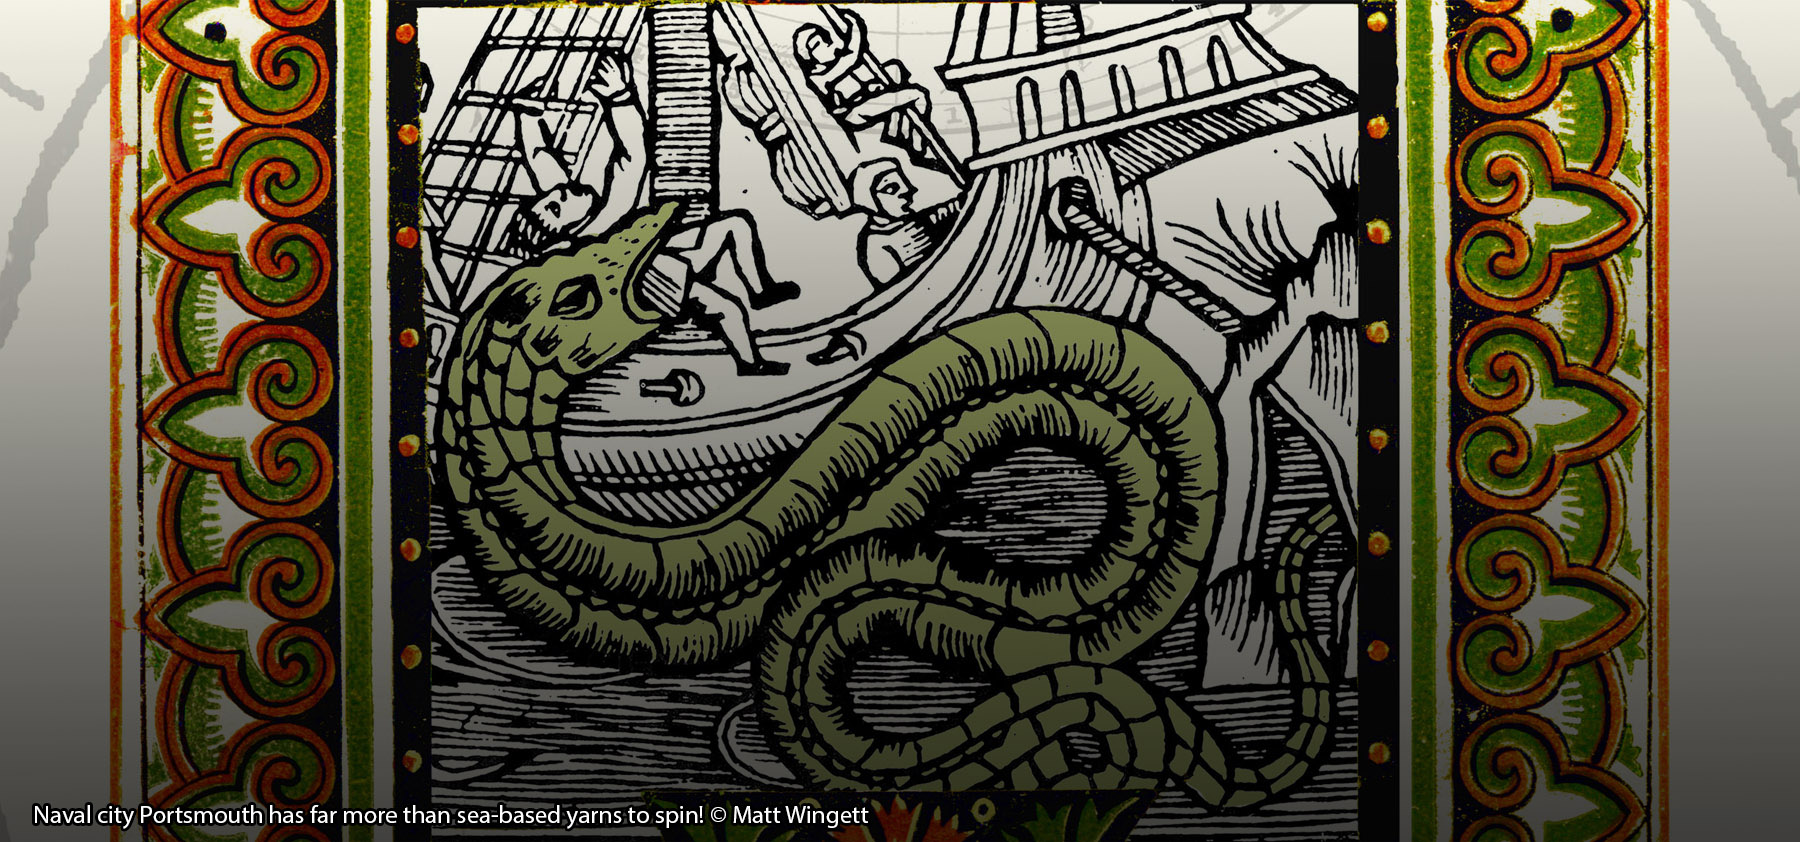 Book cover detail. Naval city Portsmouth has far more than sea-based yarns to spin! © Matt Wingett